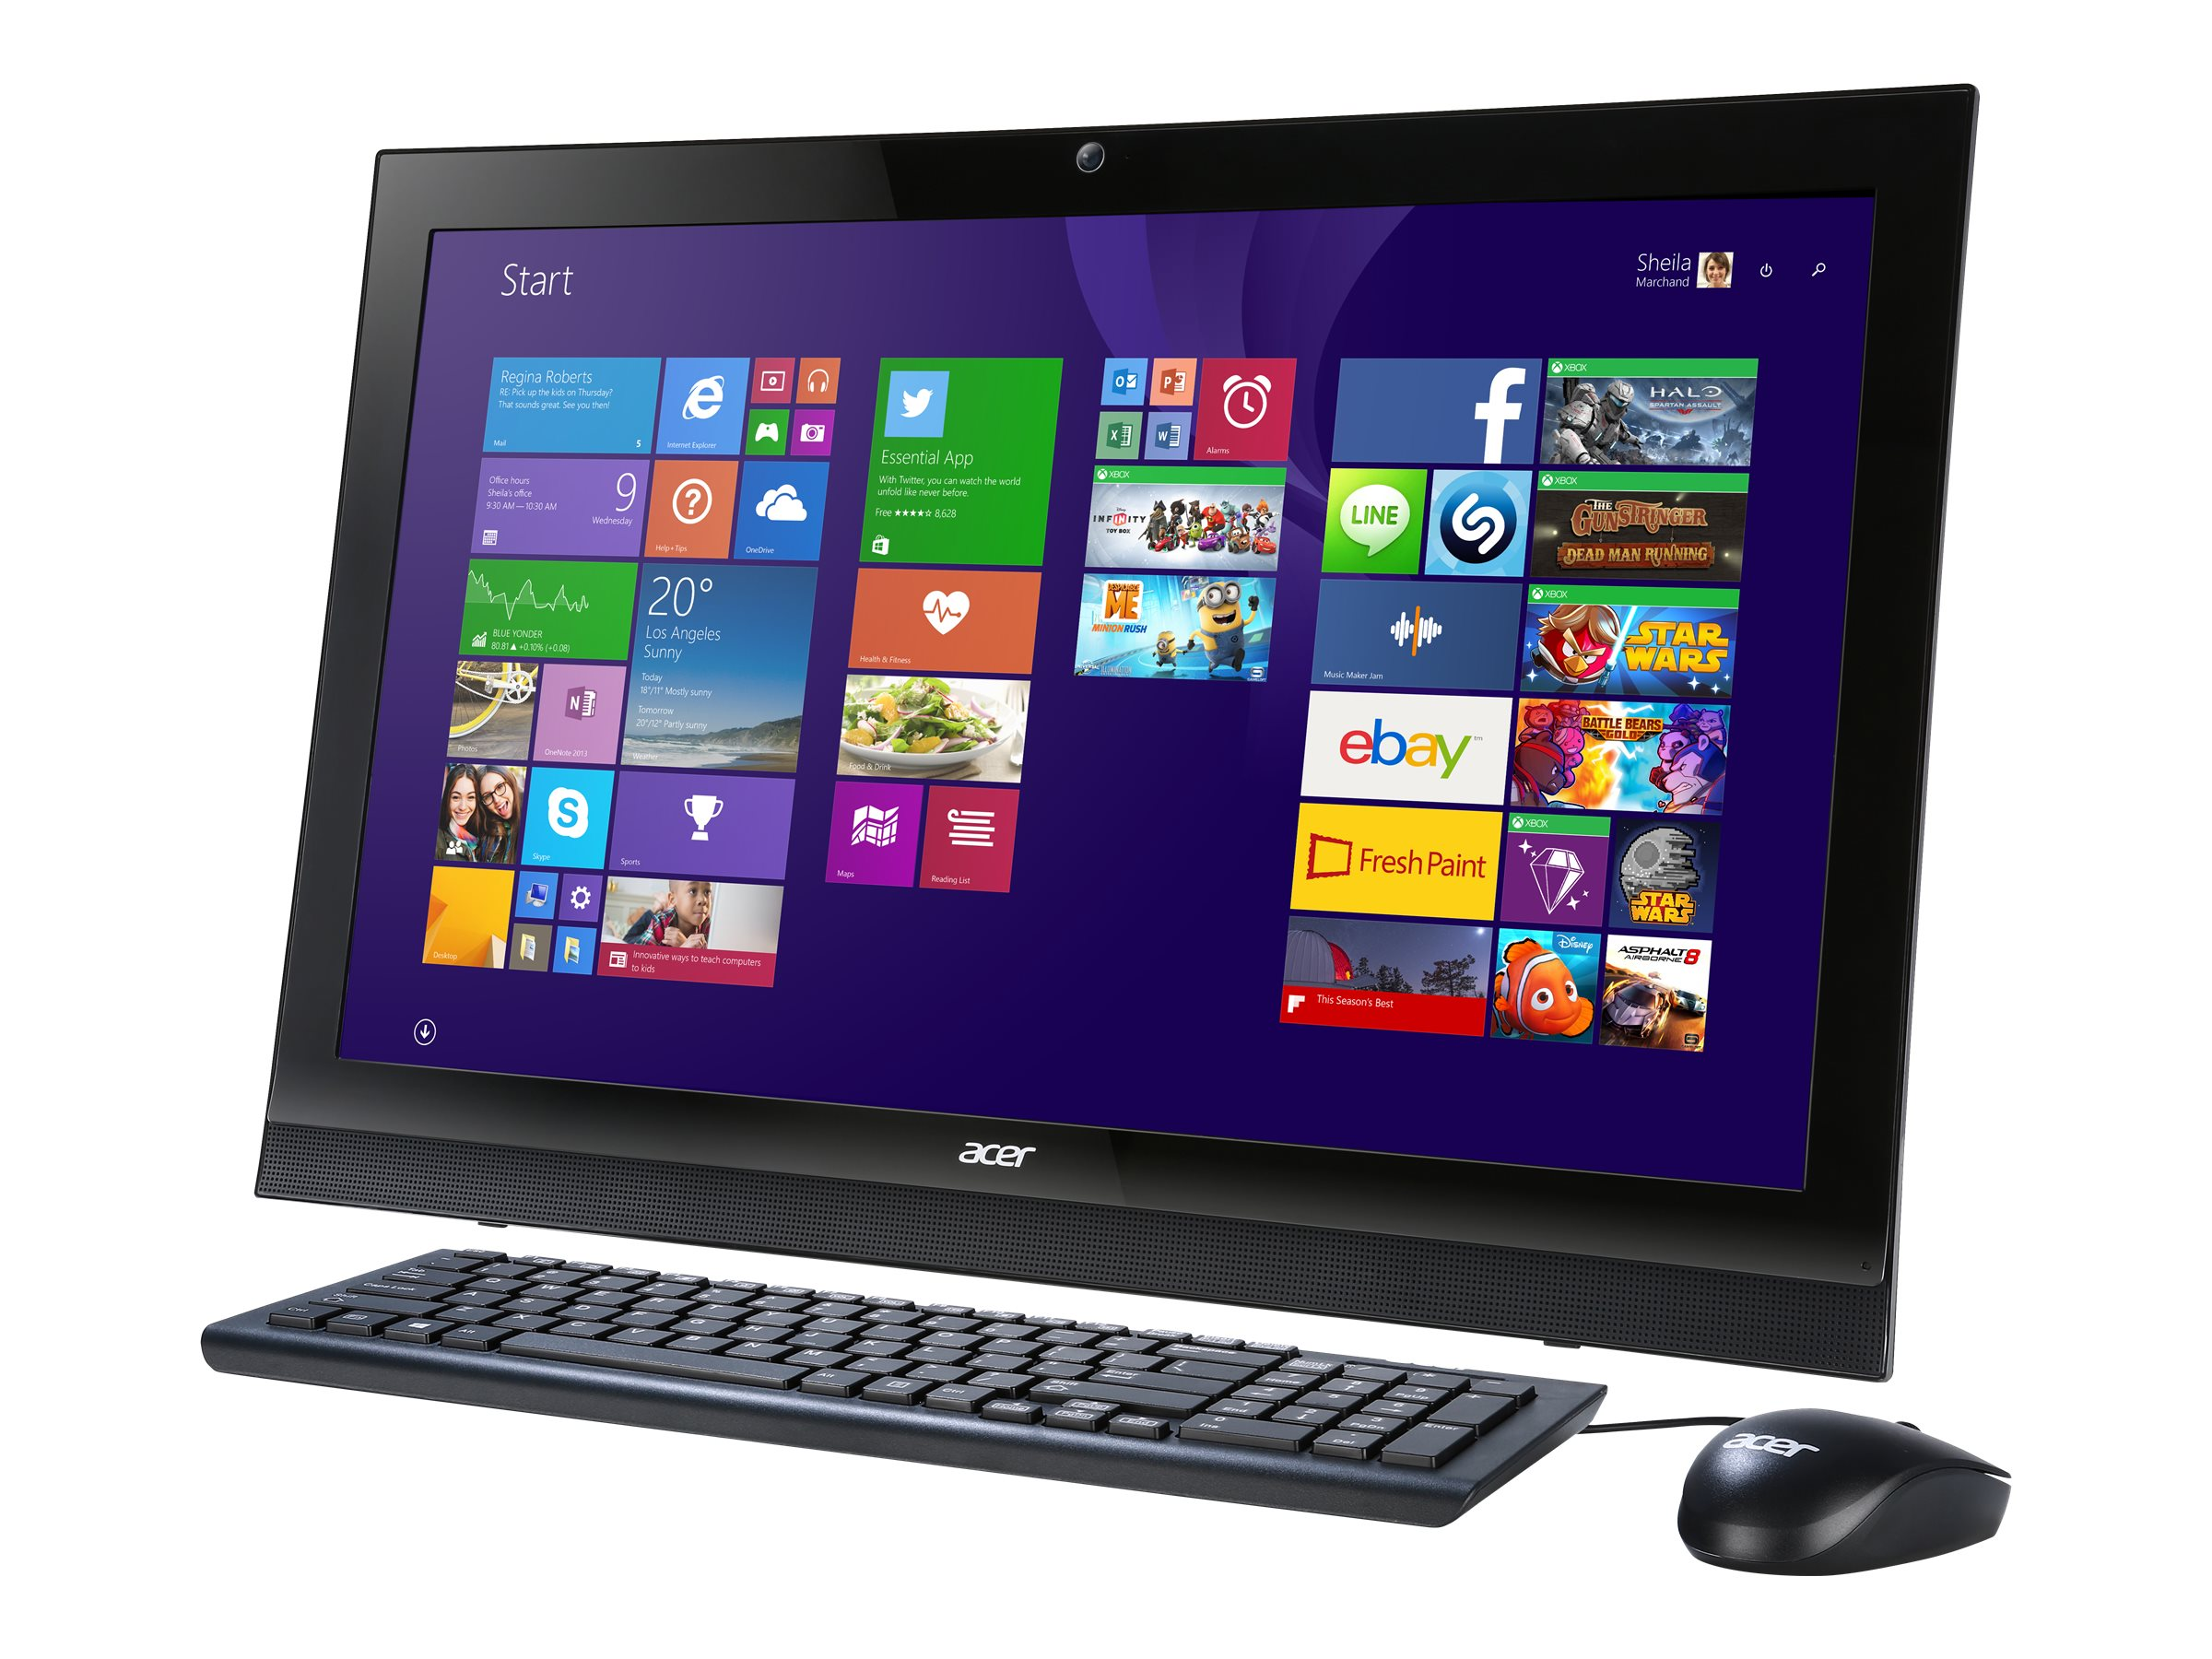 Acer Aspire AZ1-623-UR53 AIO Core i3-4005U 1.7GHz 8GB 1TB DVD SM GbE ac BT WC 21.5 Touch W10H64